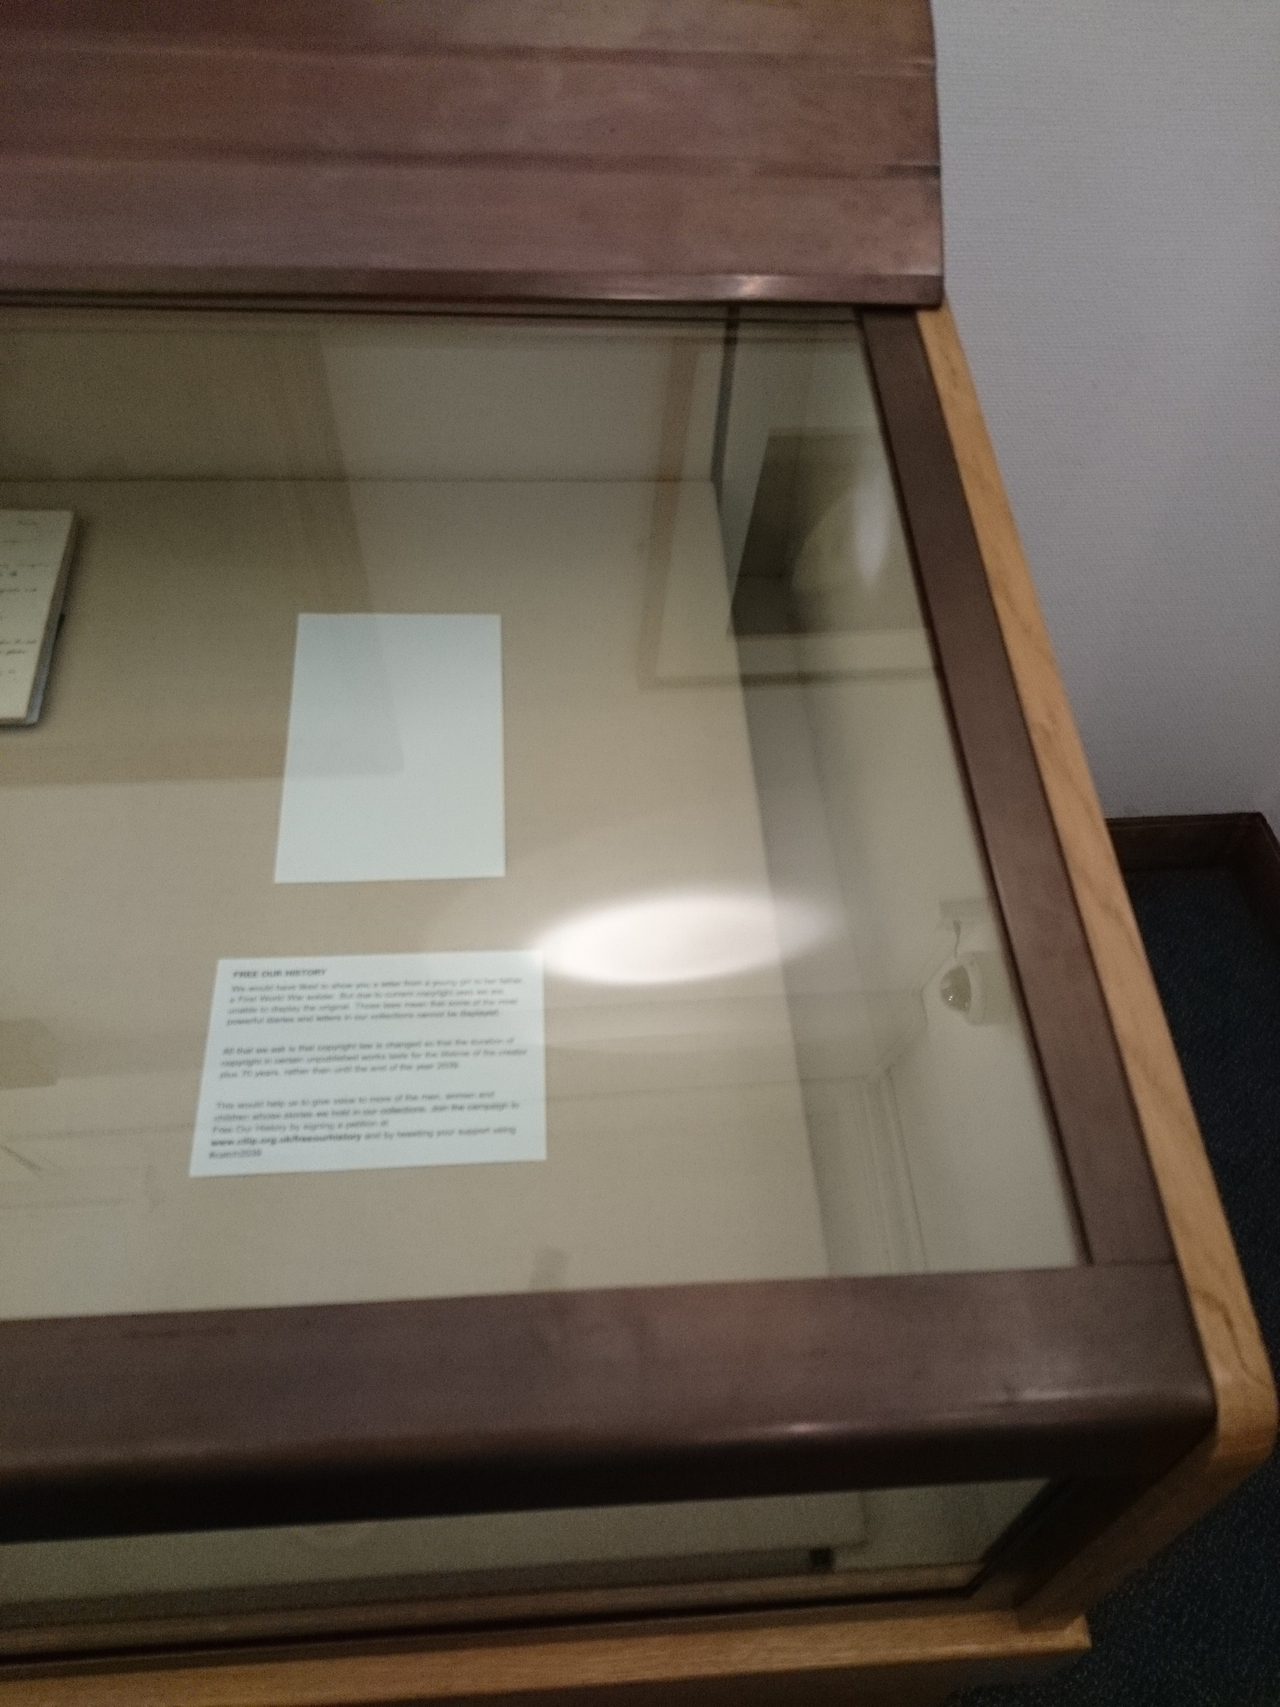 An empty display case at the Leeds University Library Reading Room (image courtesy Leeds University, via Flickr)